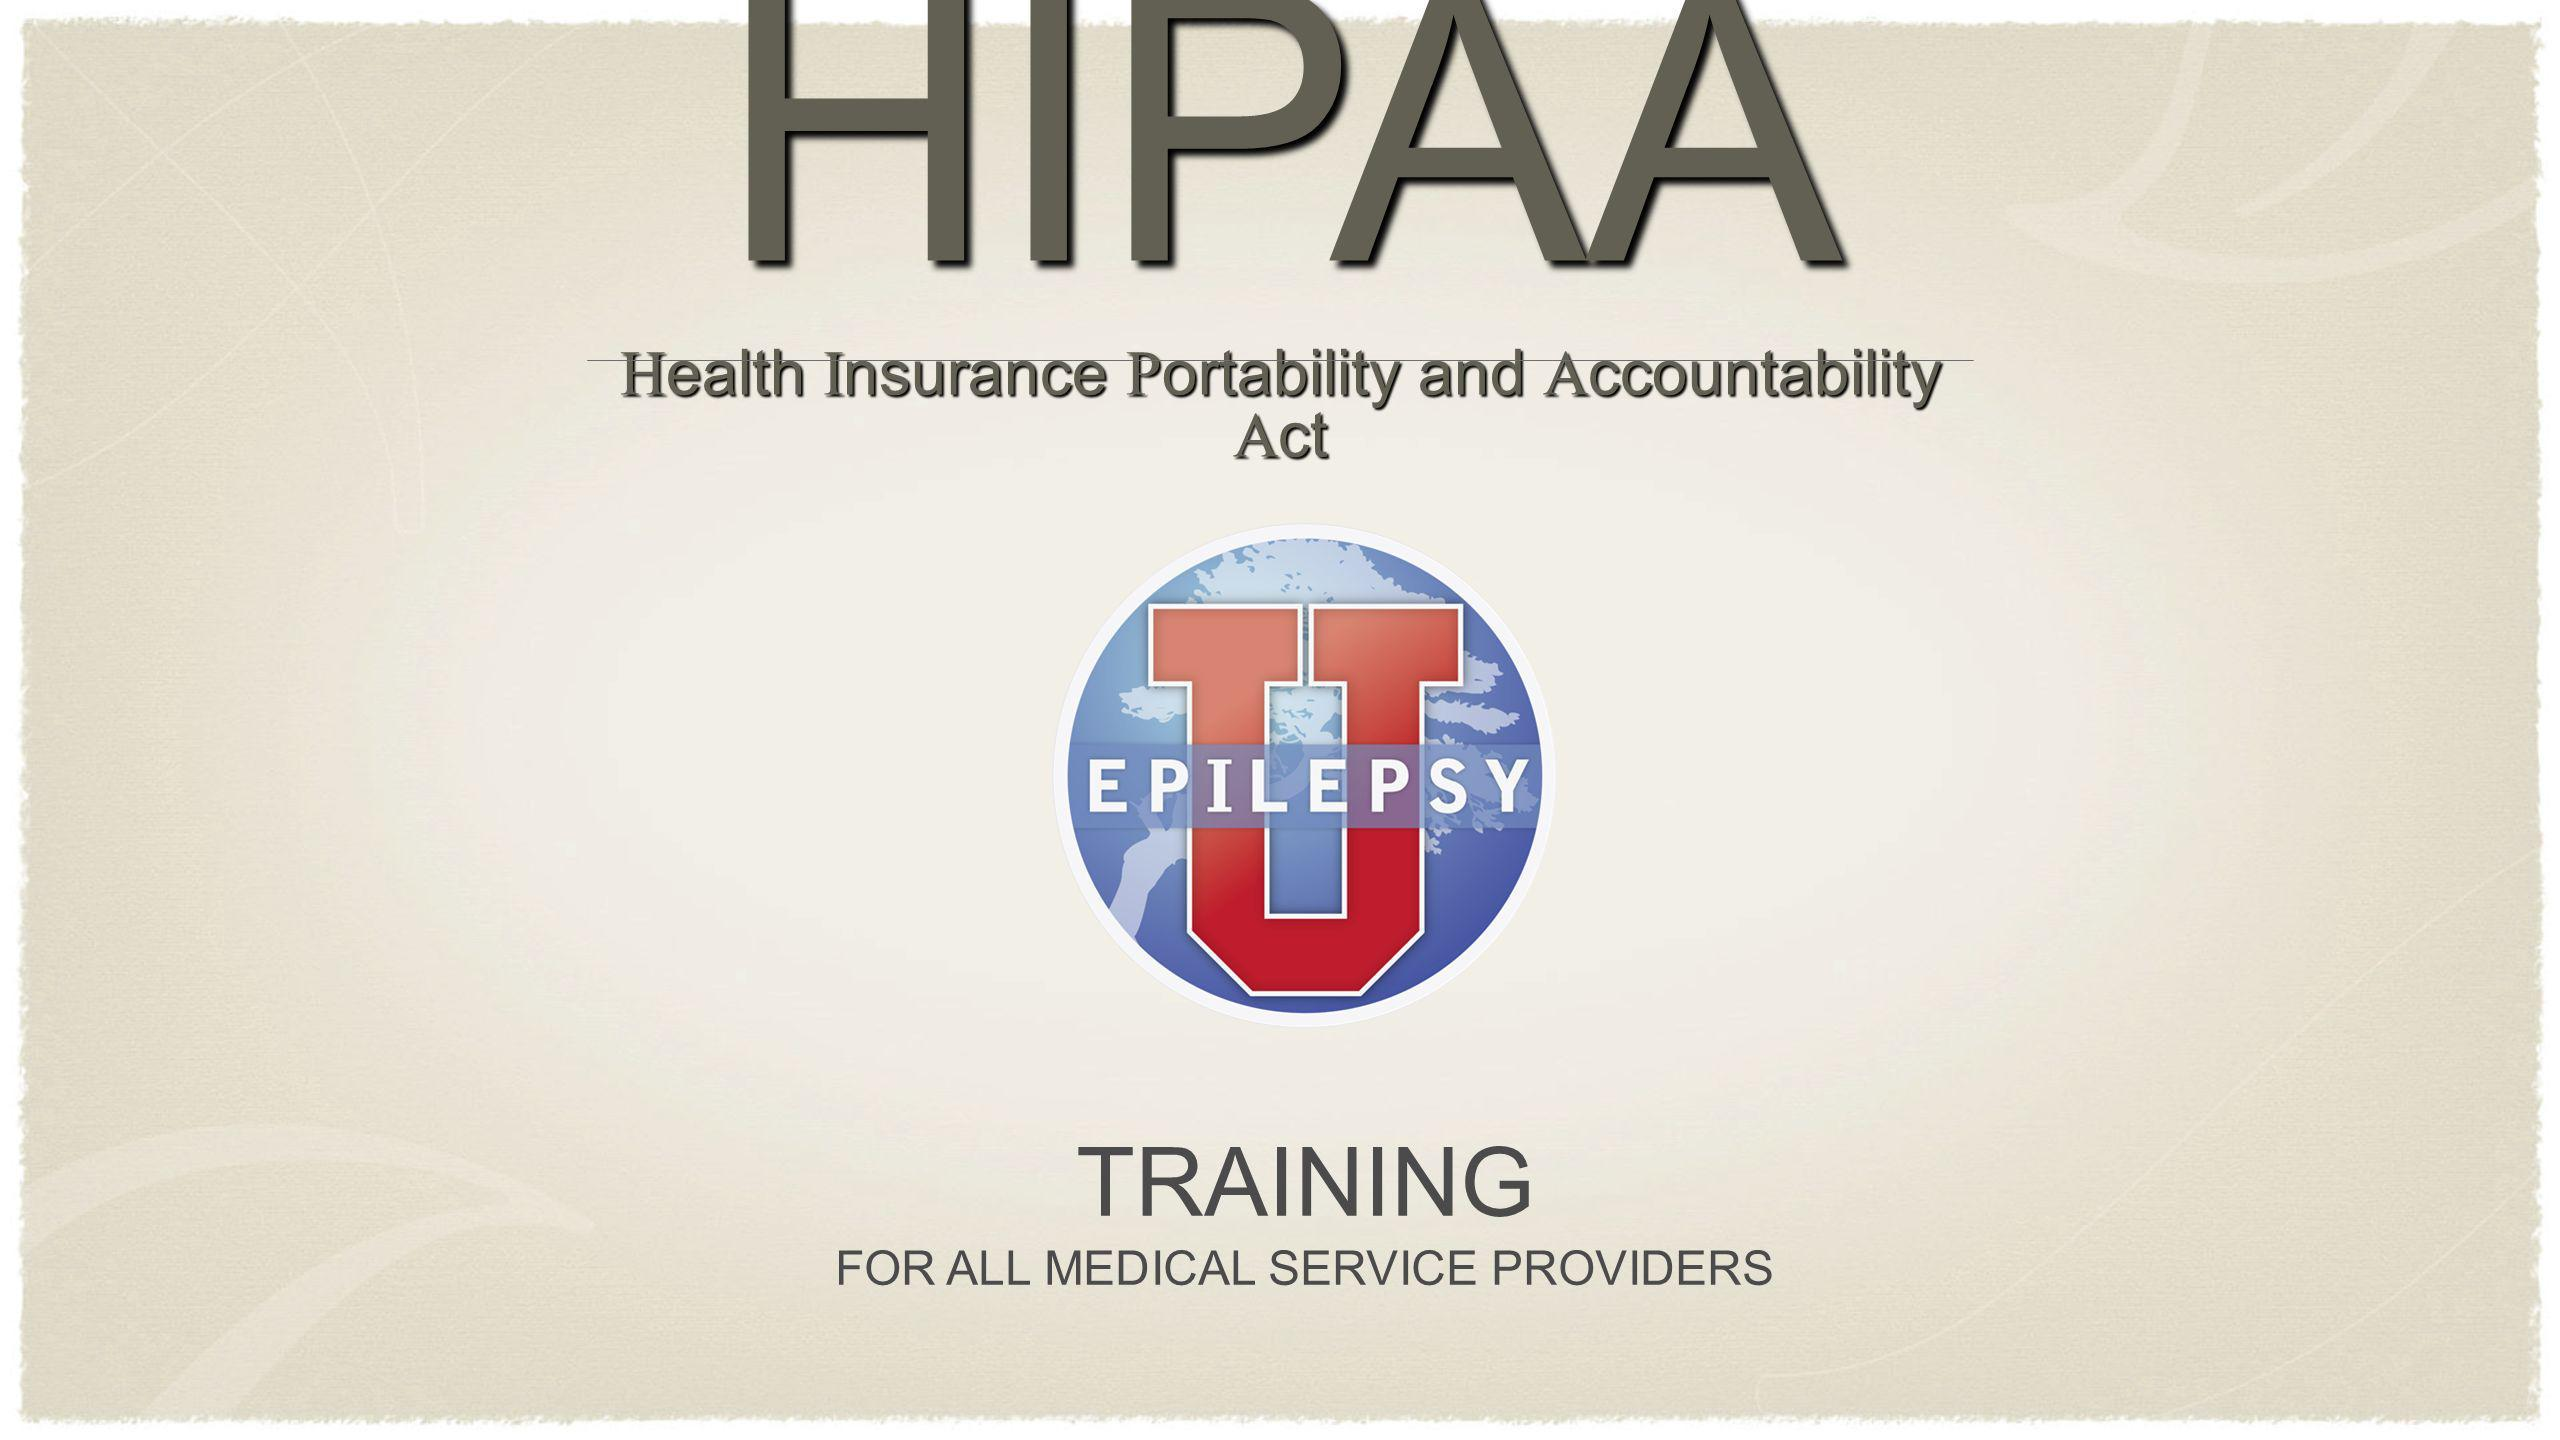 TRAINING FOR ALL MEDICAL SERVICE PROVIDERS HIPAA H ealth I nsurance P ortability and A ccountability A ct